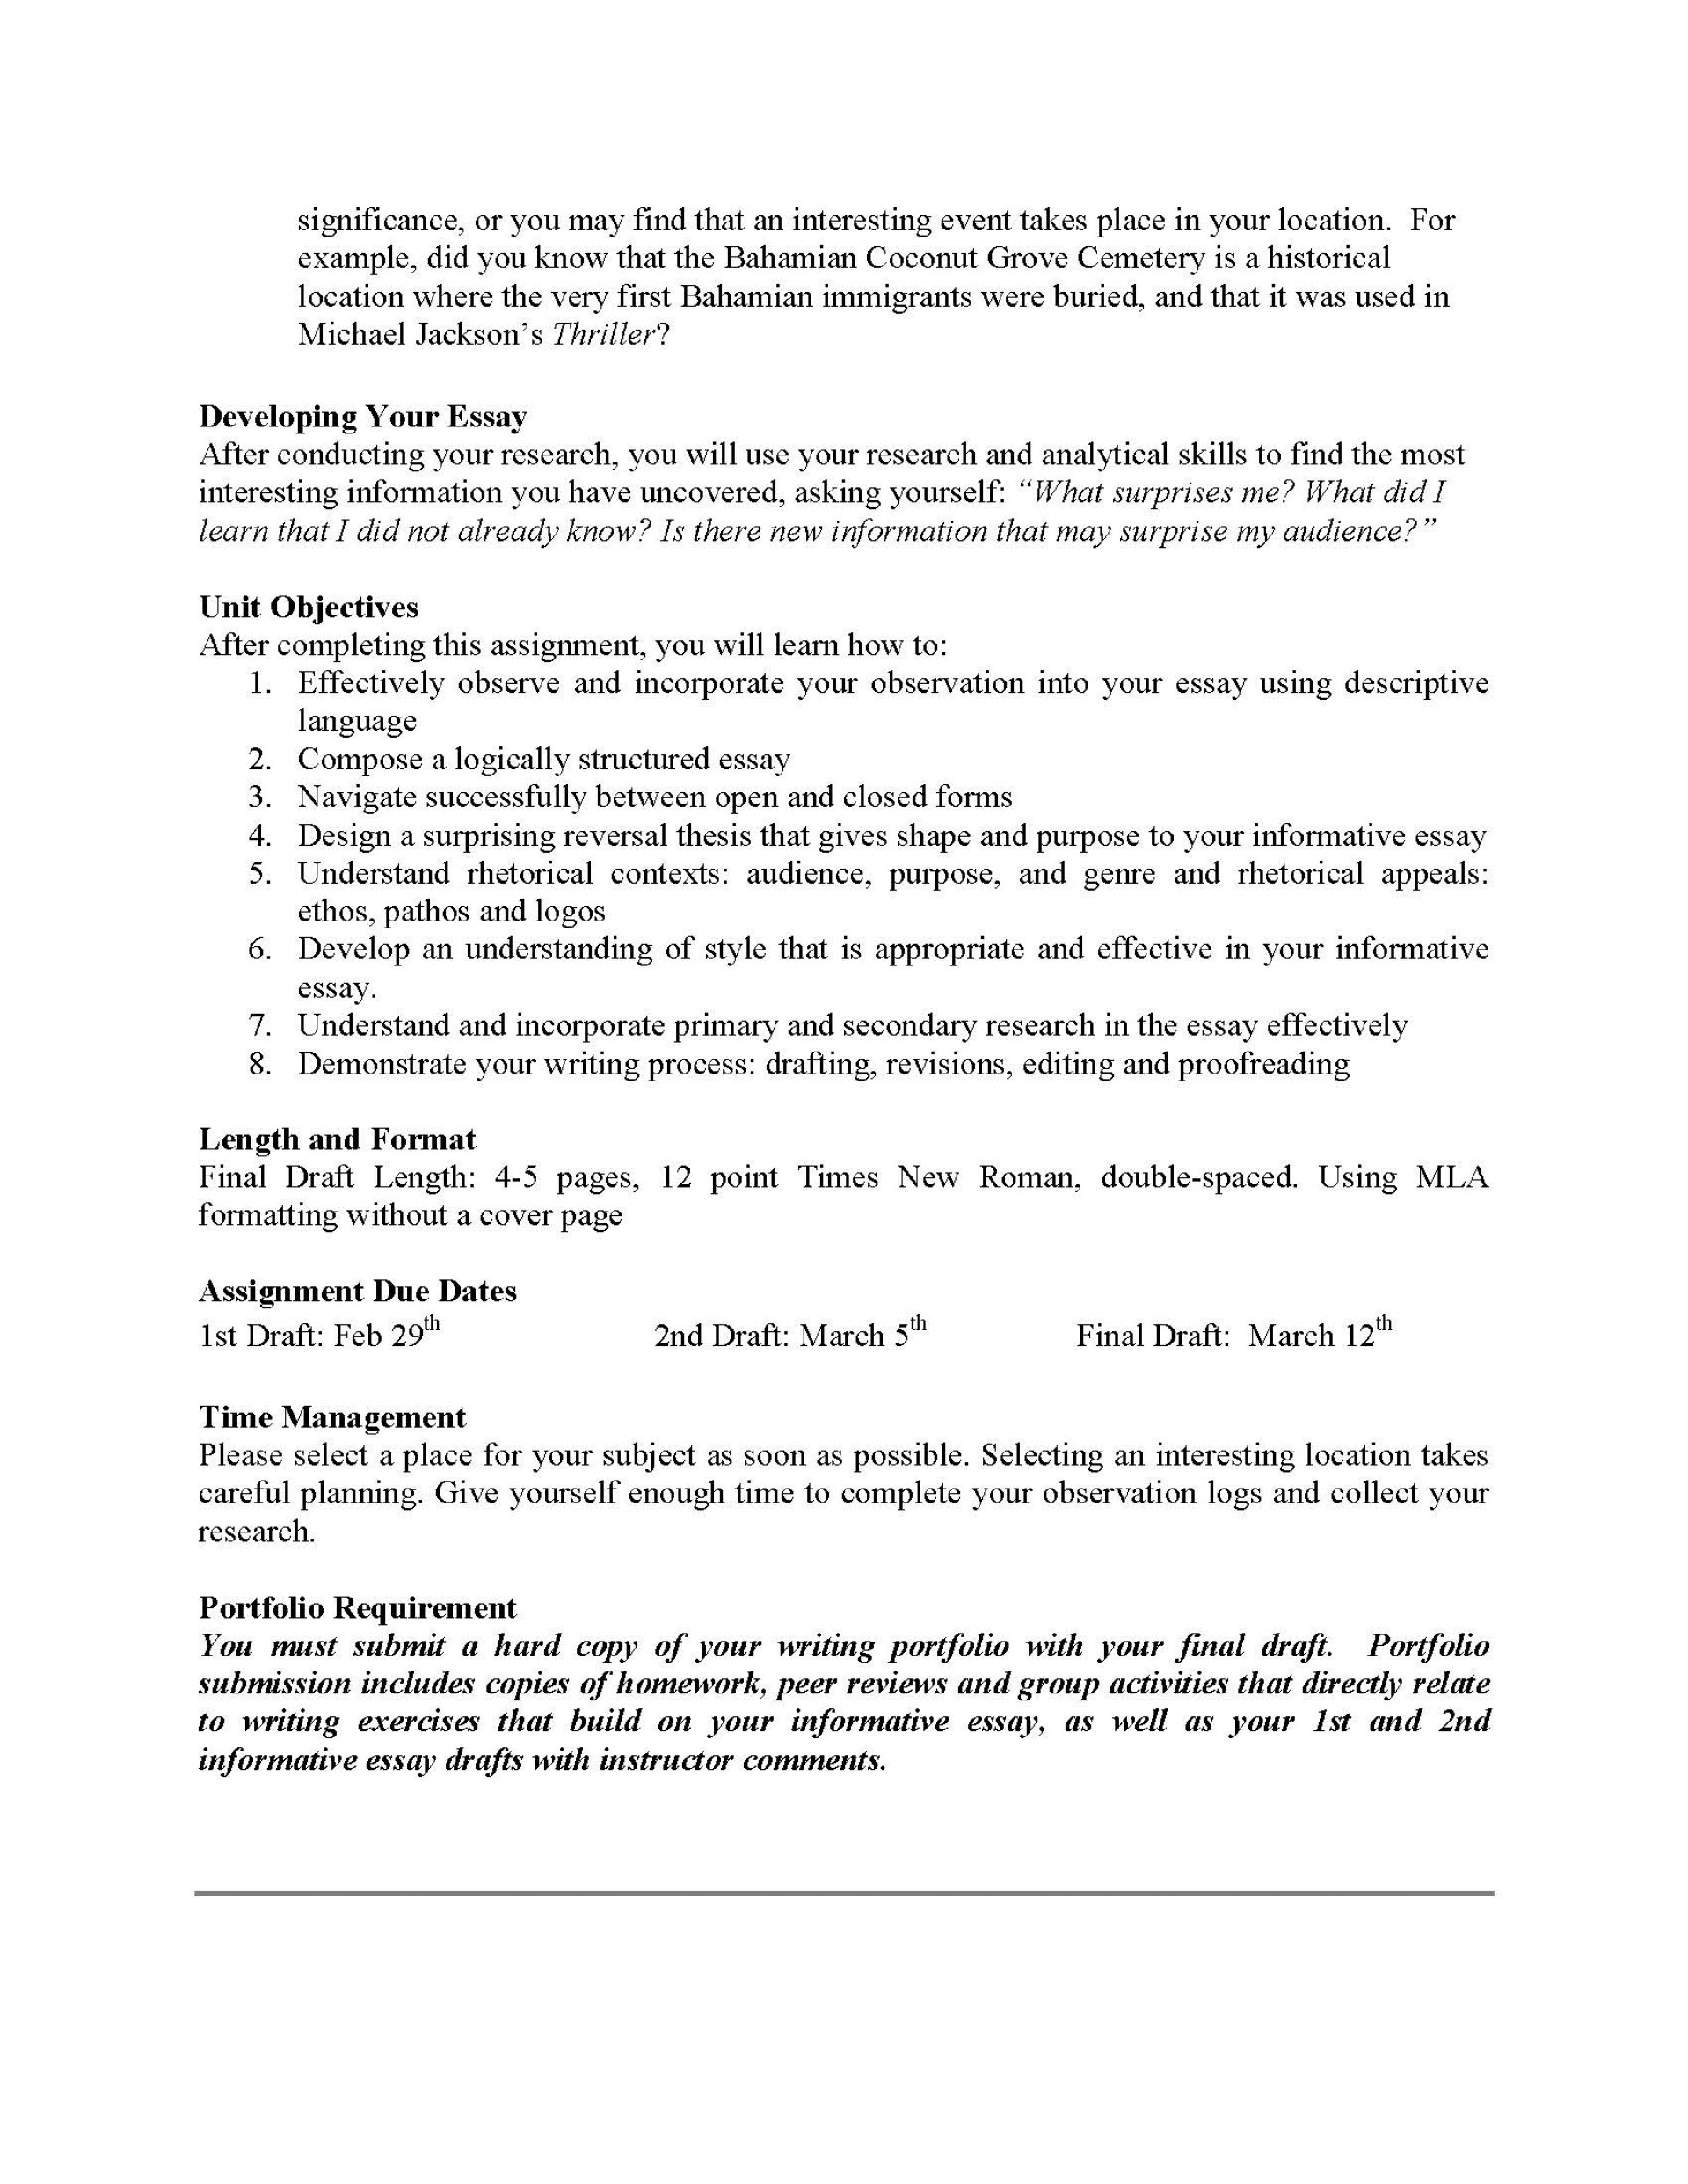 014 Informative Essay Unit Assignment Page 2 Dreaded Outline Template Pdf Topics For 5th Grade Rubric Fsa 1920